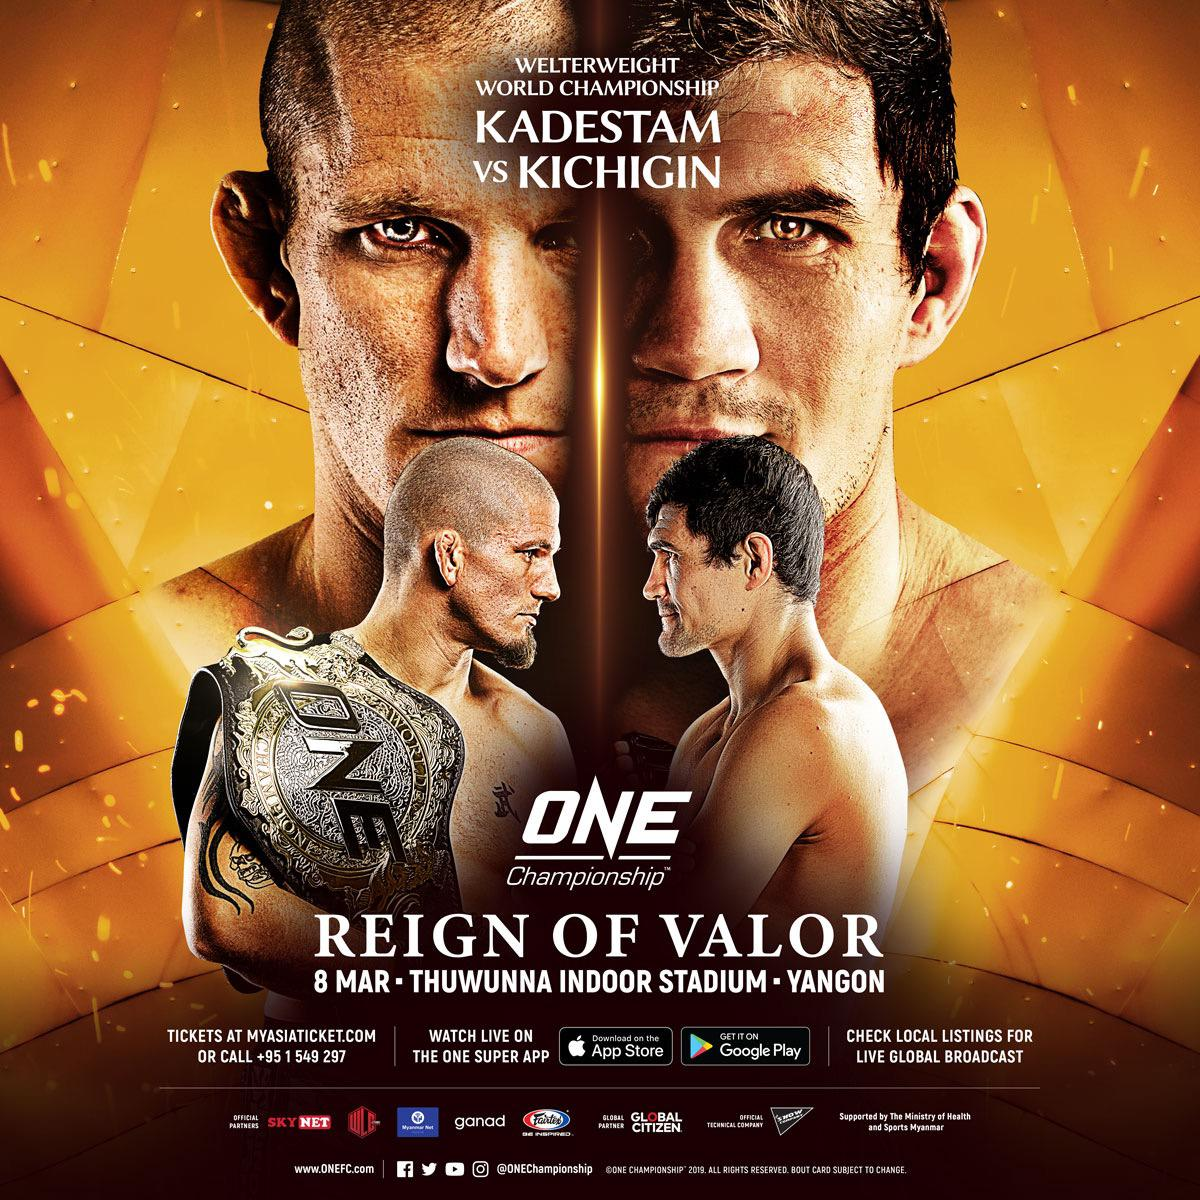 Zebaztian Kadestam To Defend Title Against Georgiy Kichigin At One: Reign Of Valor